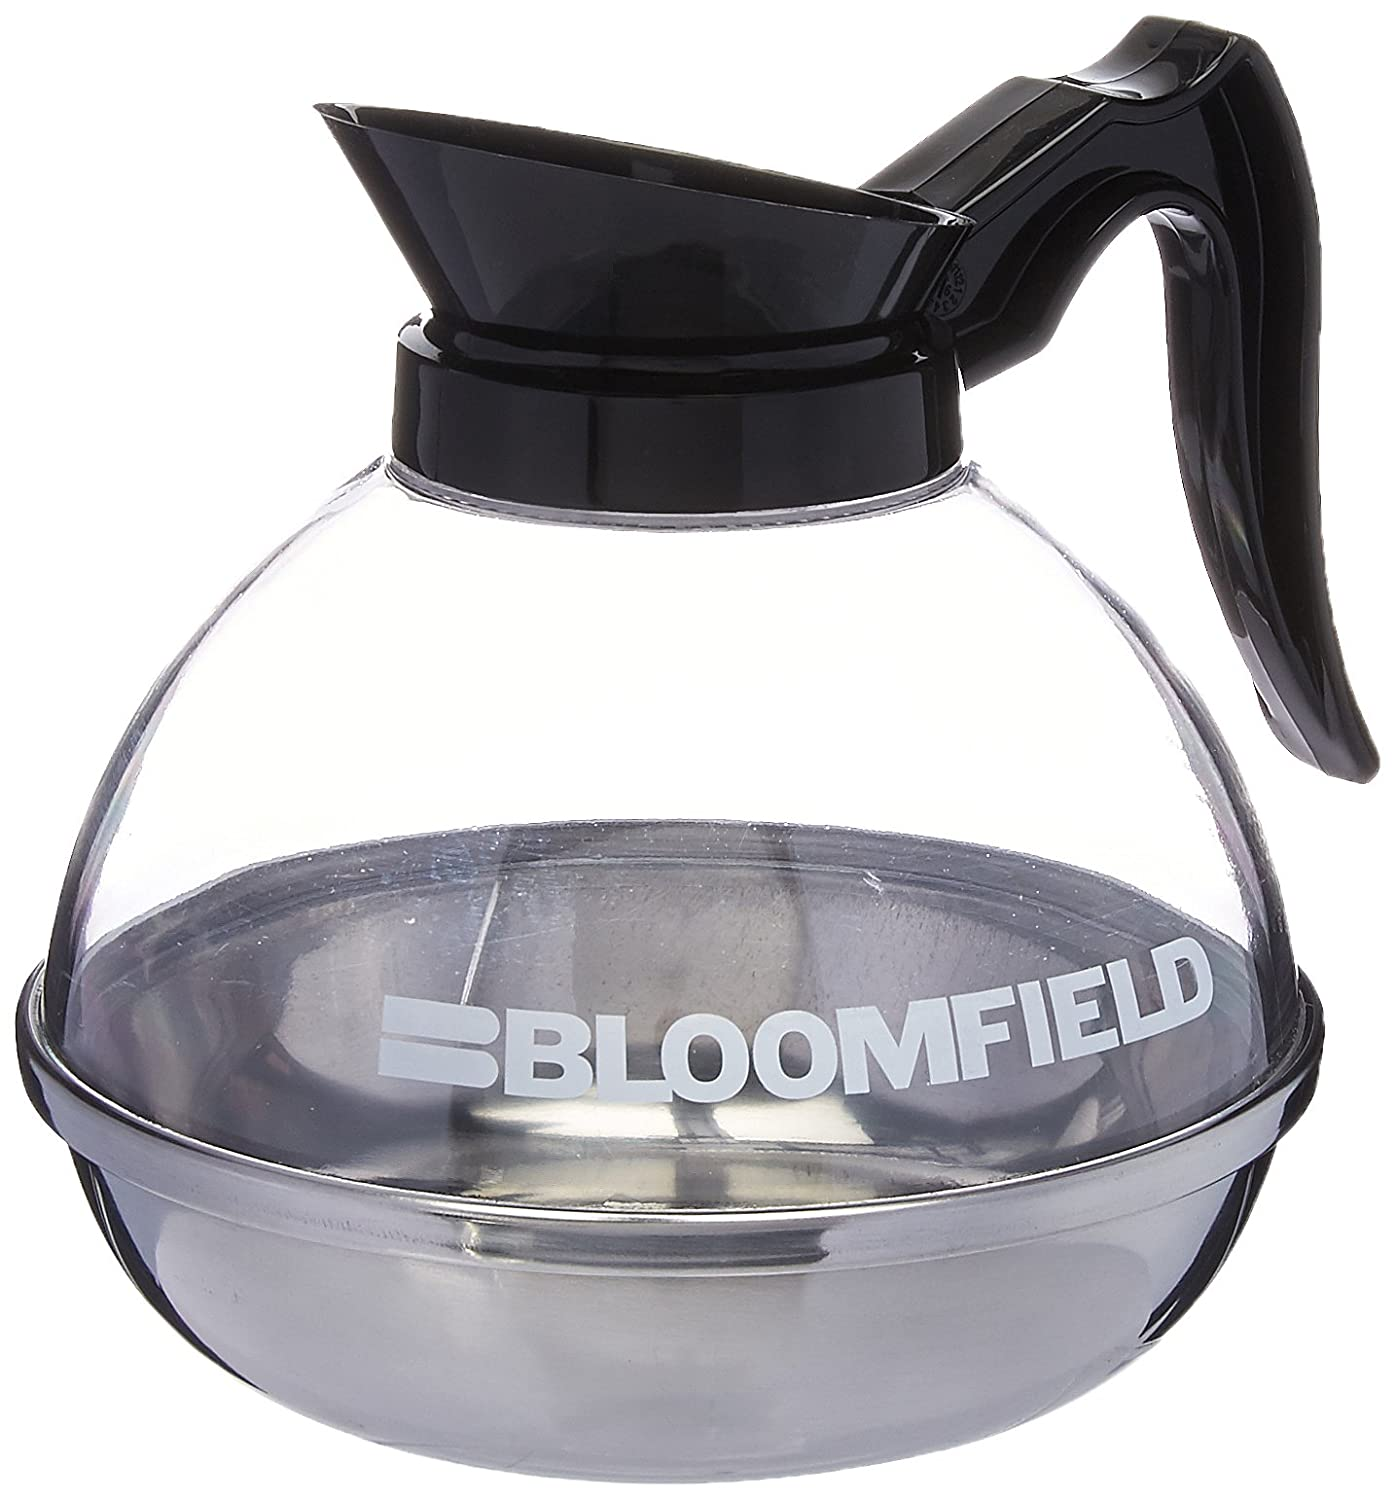 Bloomfield REG10114BLI Unbreakable Decanter, Plastic with Stainless Steel Bottom, Black Handle Bloomfield Worldwide a division of The Star Group